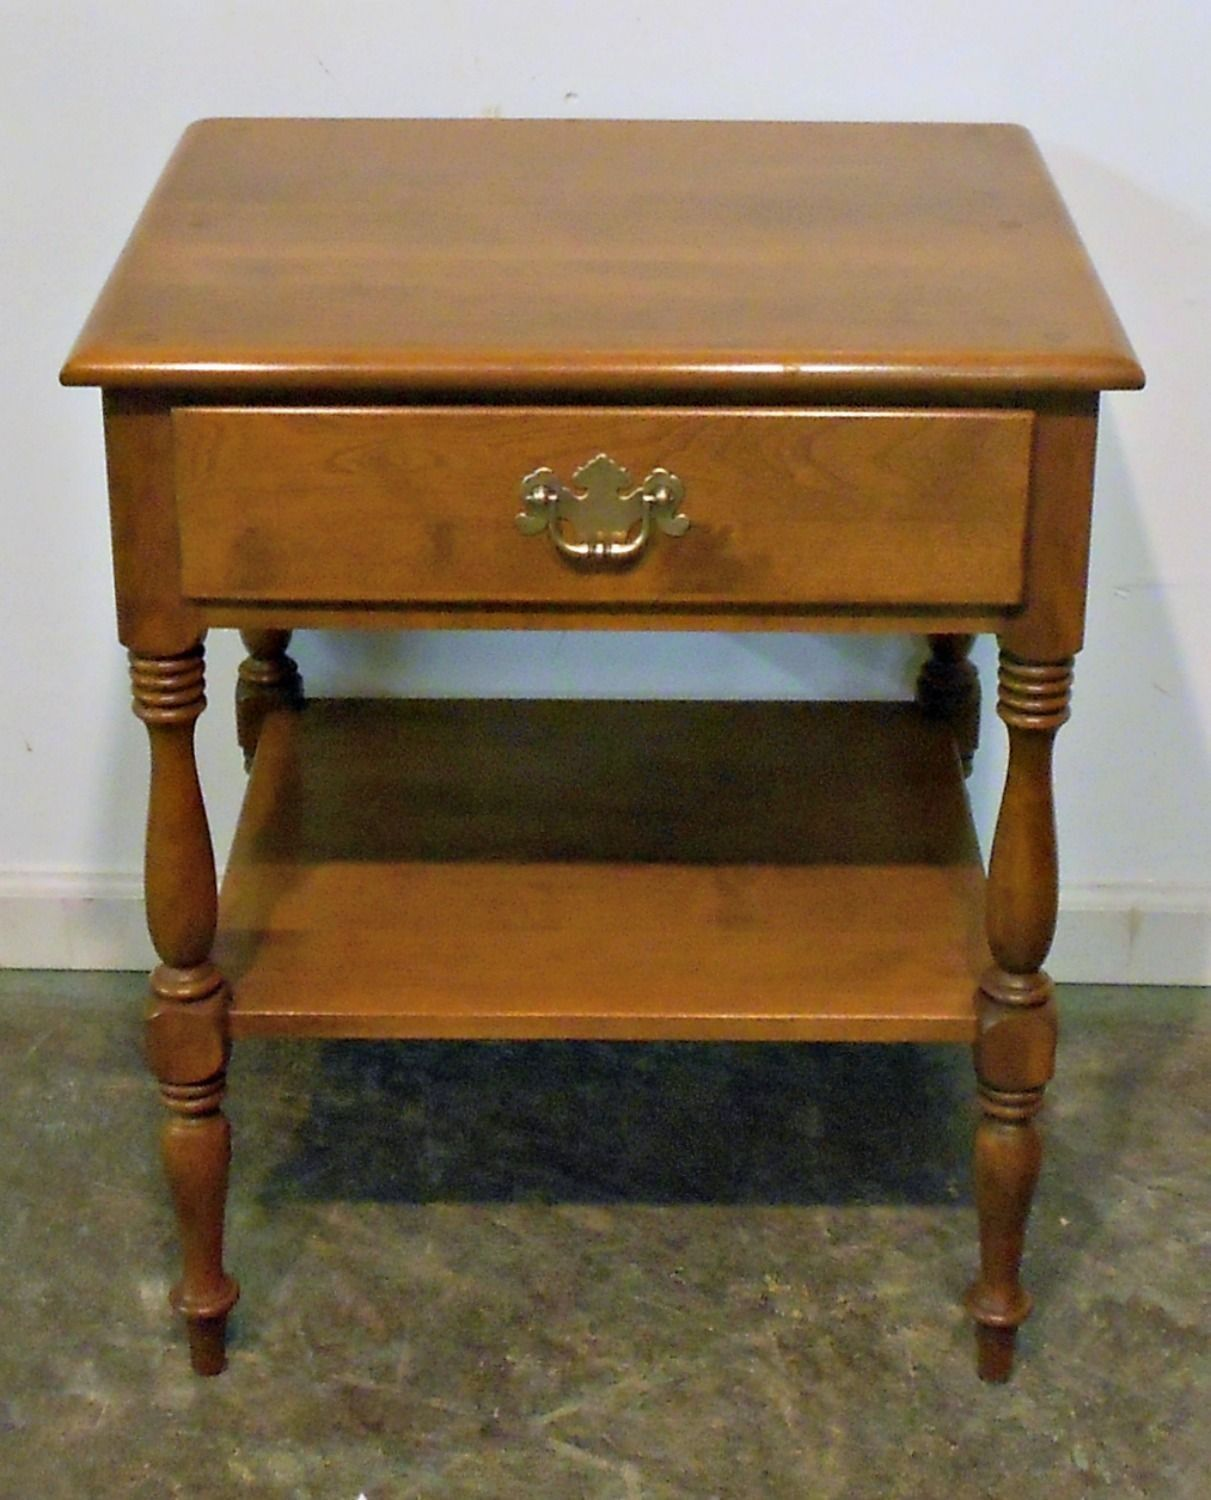 New Ethan Allen Nightstand Maple Furniture Antique Beds Ethan